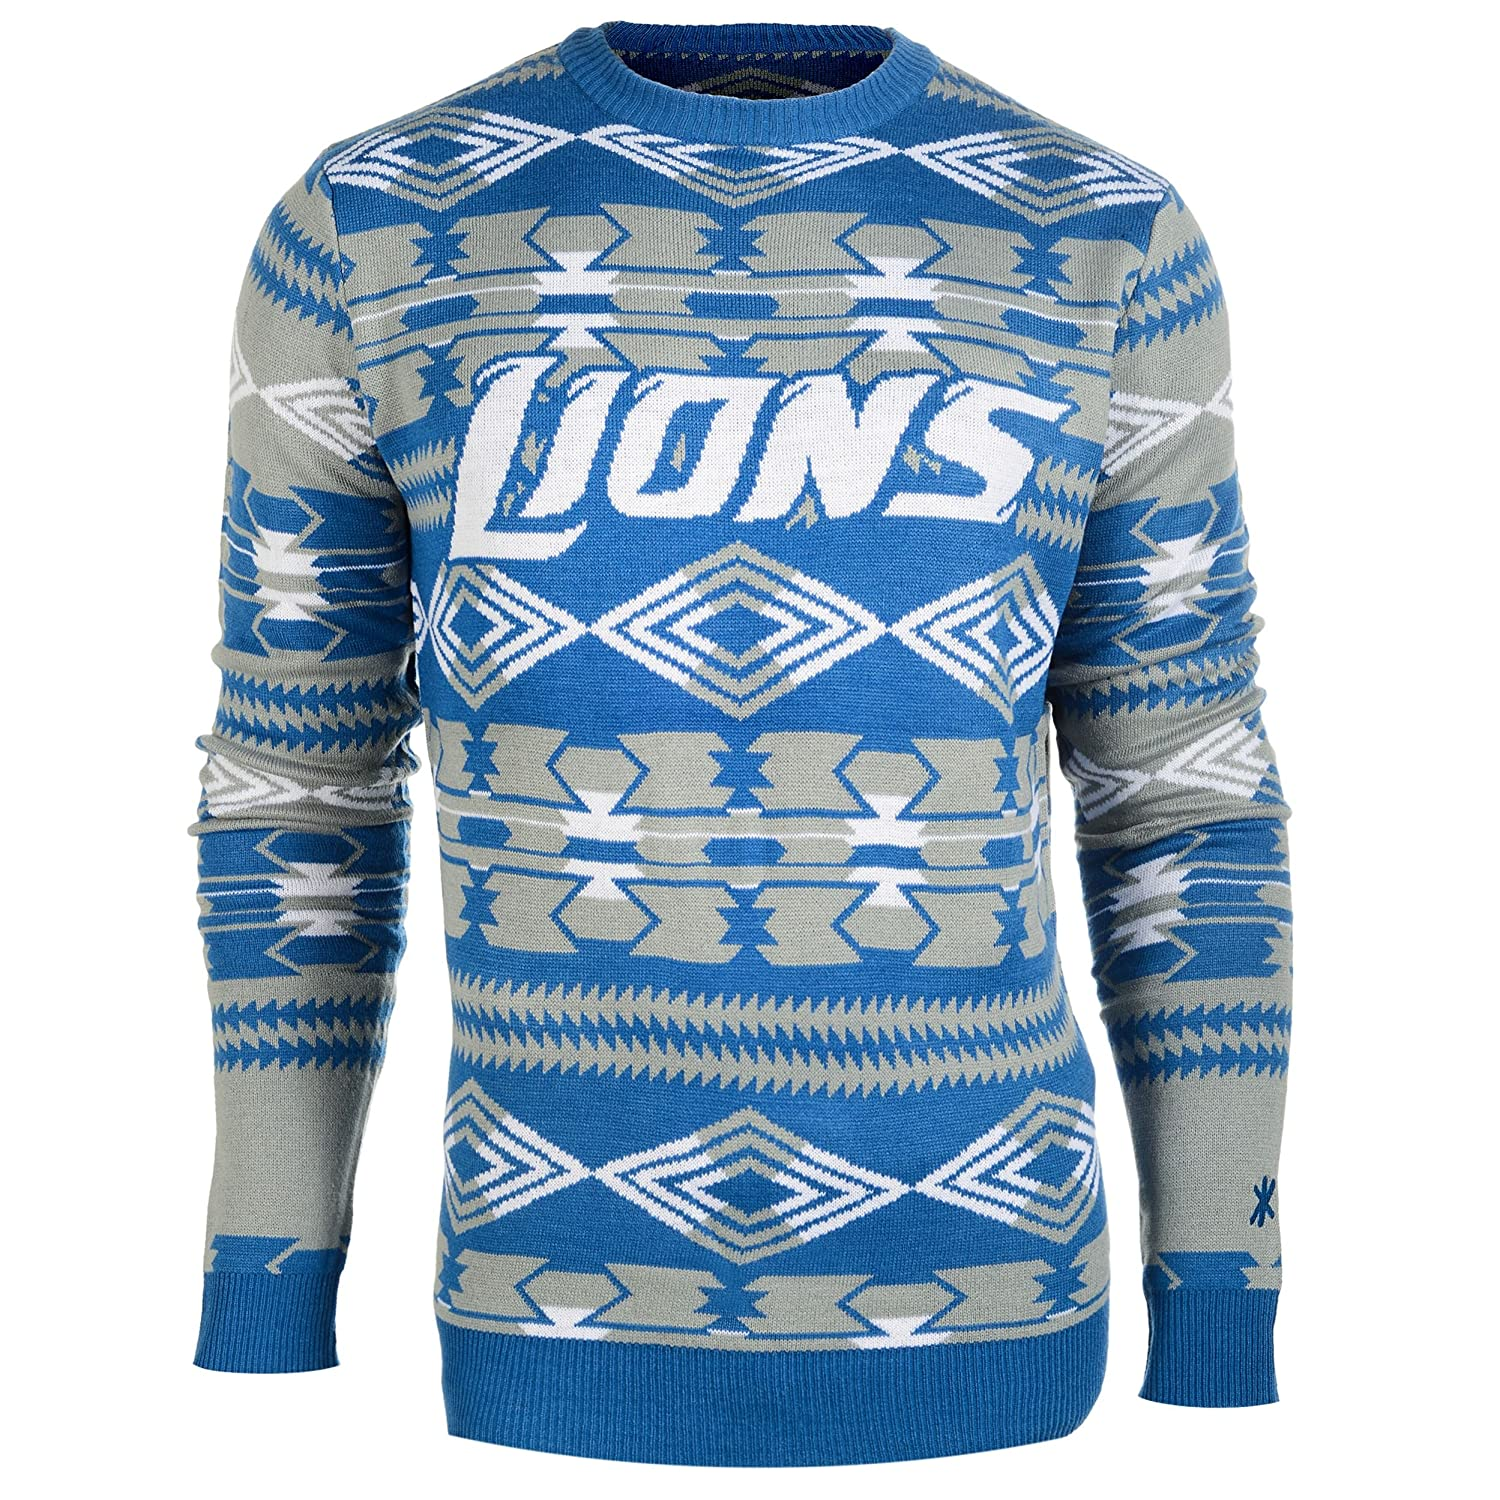 Lions Ugly Holiday Sweater